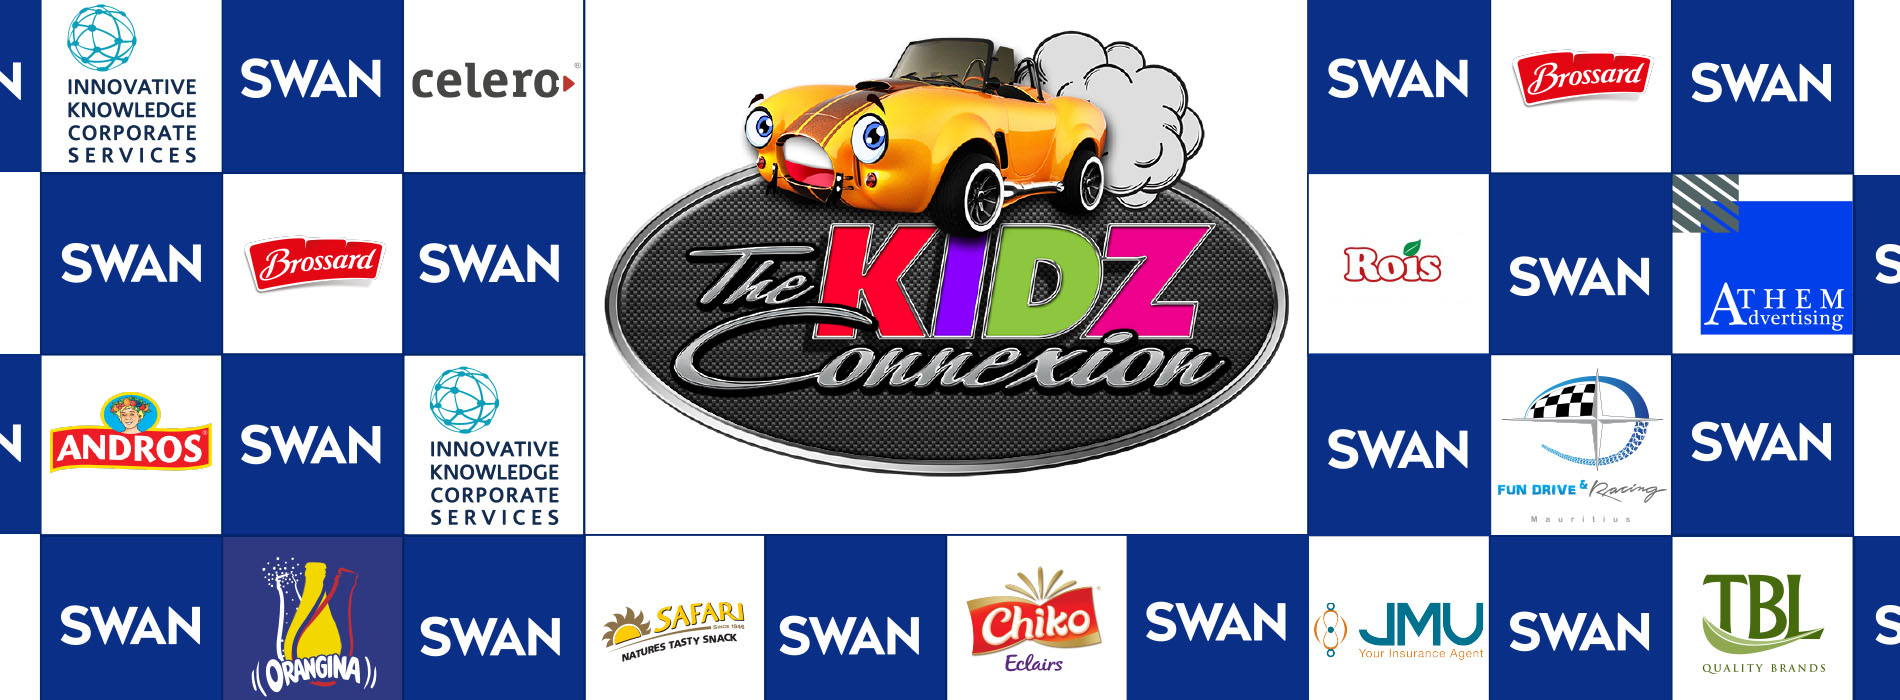 Grand Prix The Kidz Connexion on Sunday December, 2 2018